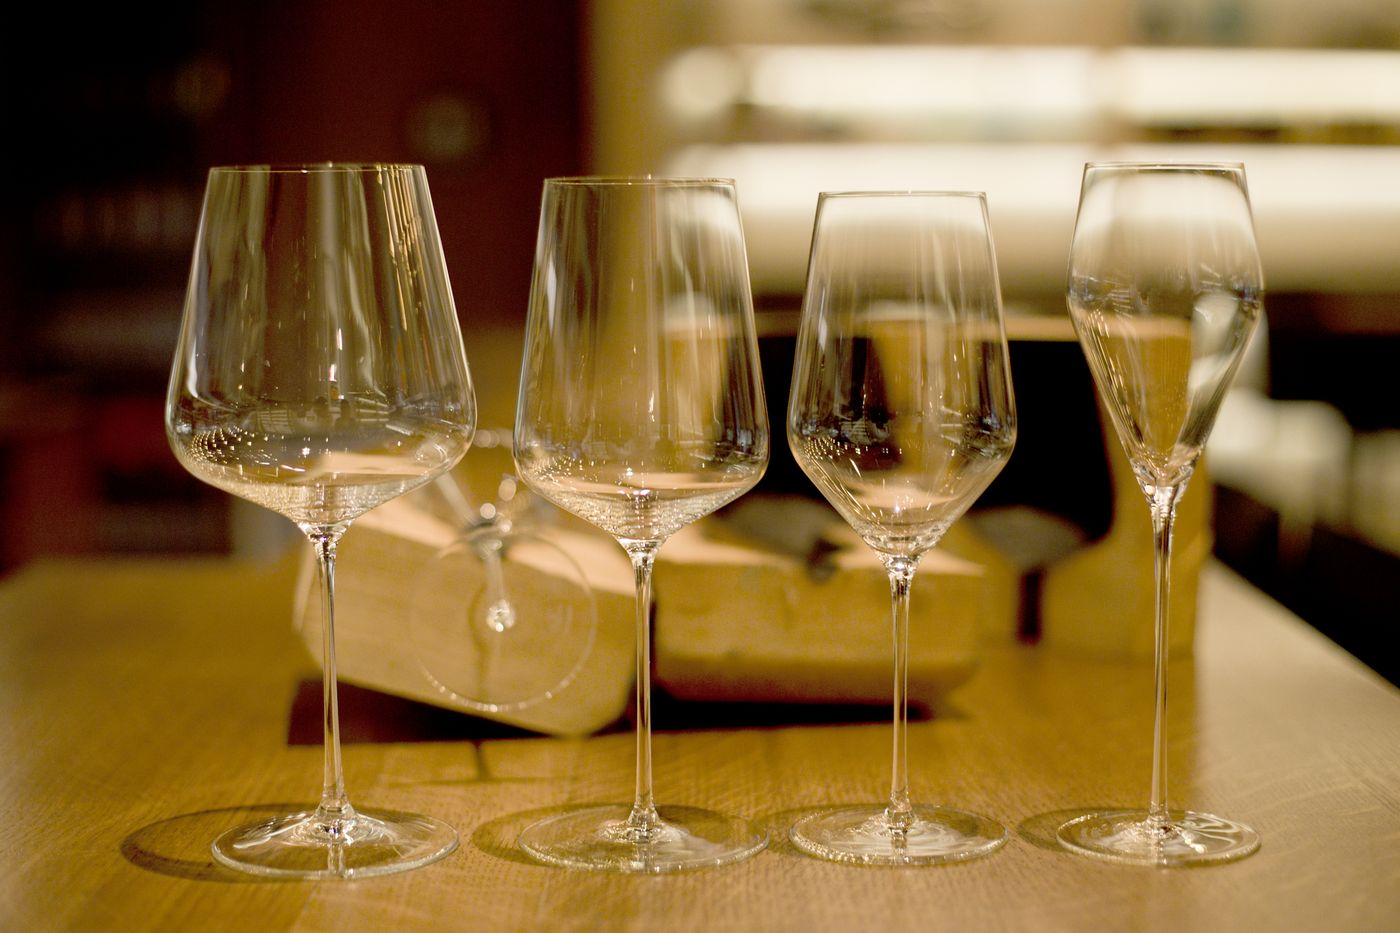 Dive into the Bizarre World of Sommeliers in 'Cork Dork'